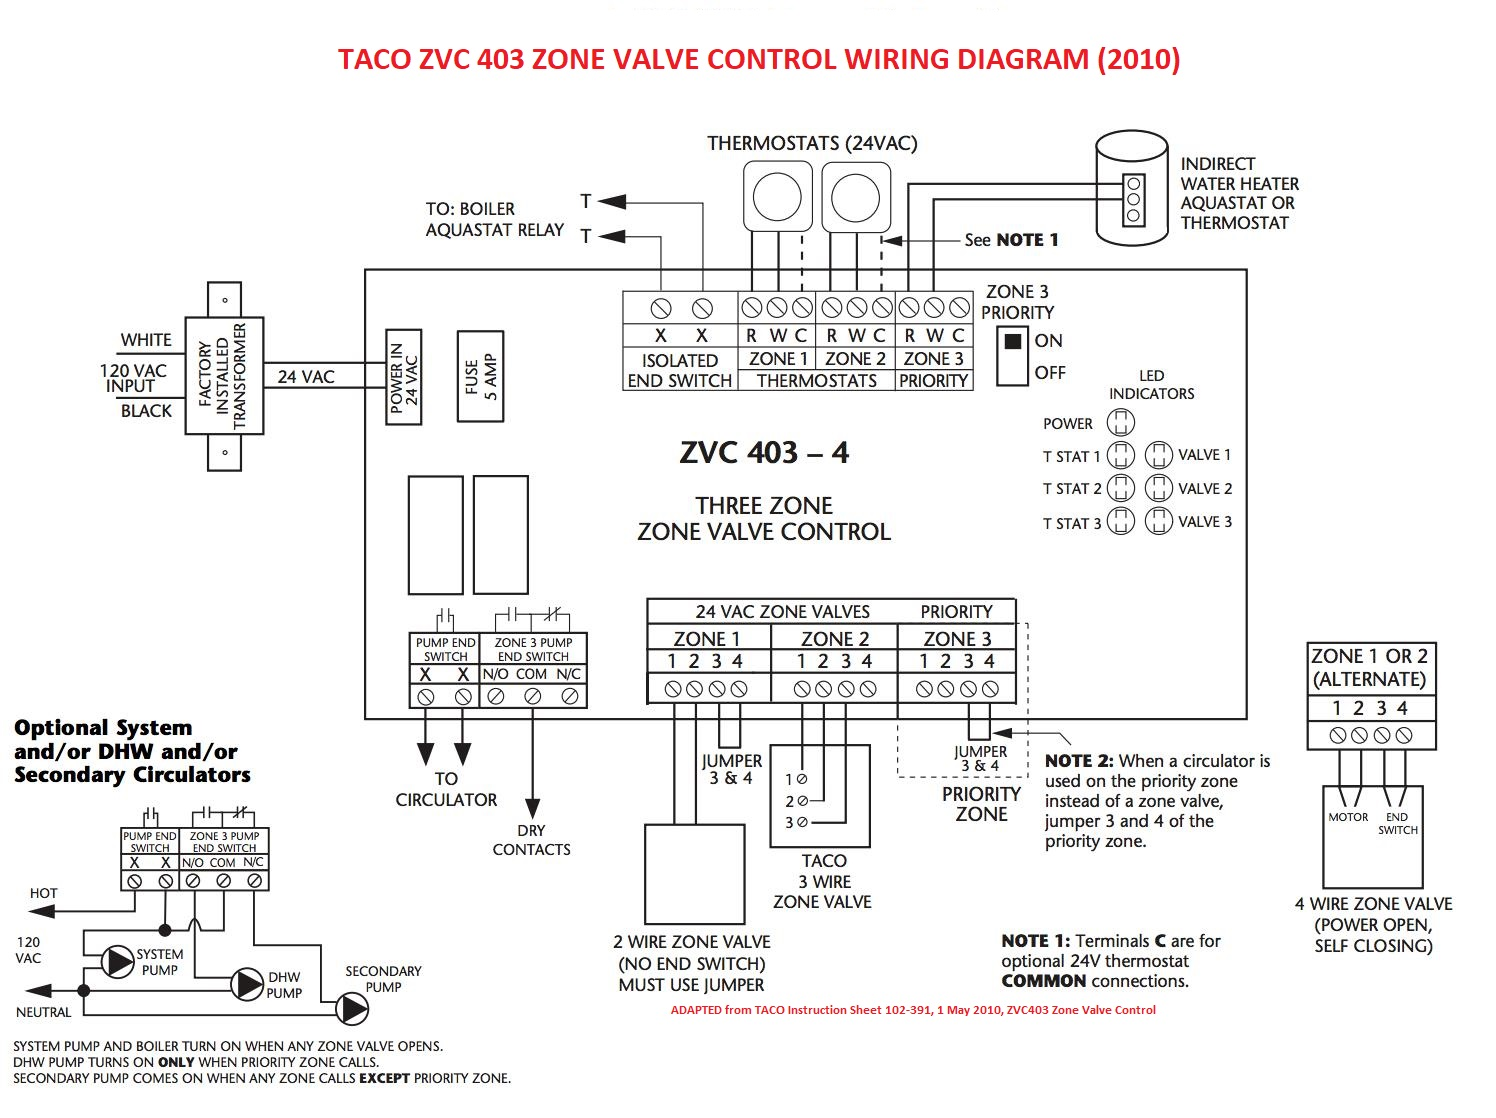 Zone Valve Wiring Installation Instructions Guide To Heating Wire Color Code Hot Neutral Taci Zvc493 Diagram Click Enlarge At